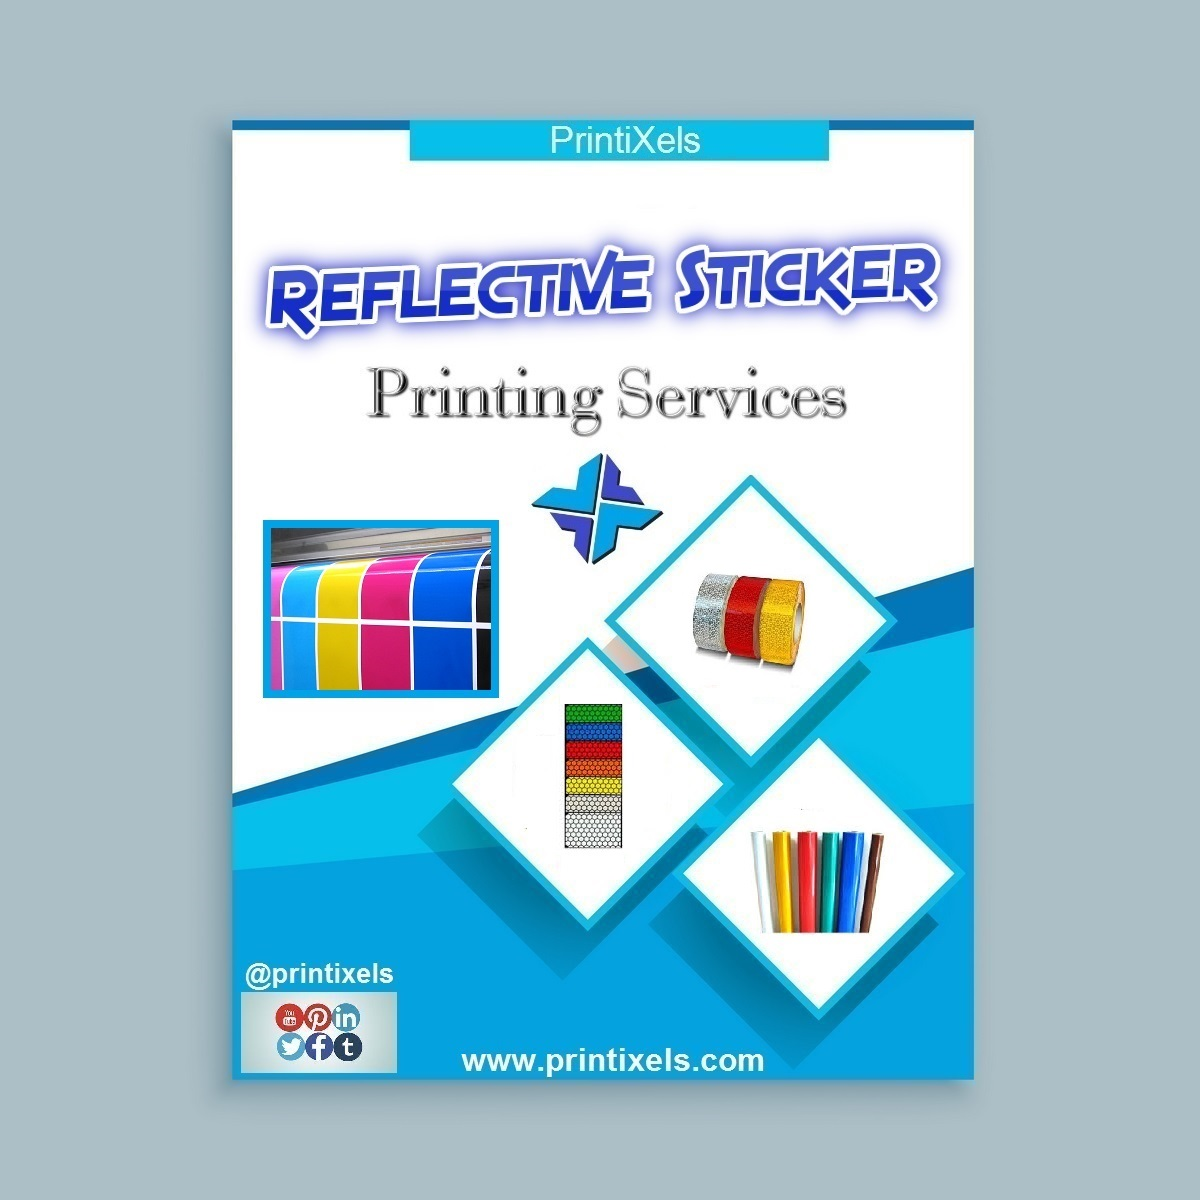 Car sticker maker philippines - Reflective Sticker Printing Services